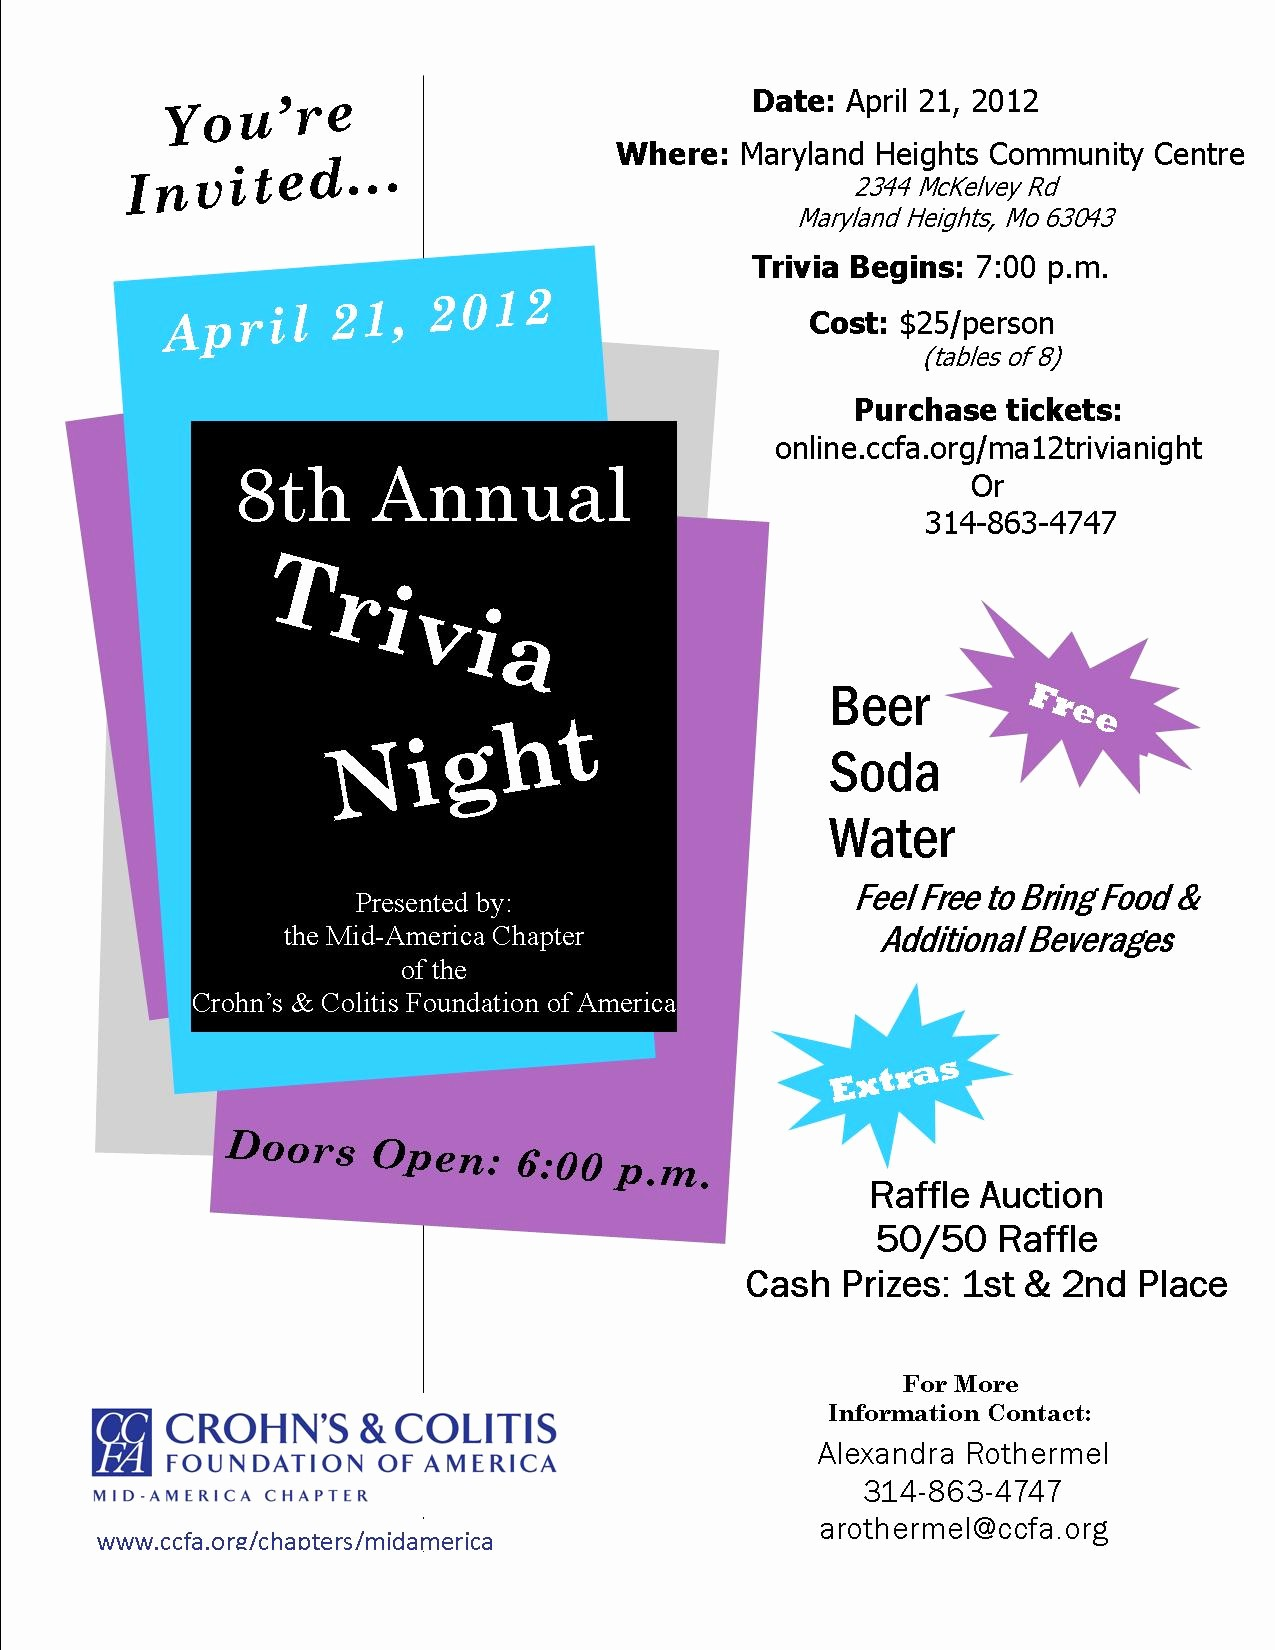 Trivia Night Flyer Template Free Best Of 2012 Mid America Trivia Night Crohn S & Colitis Foundation